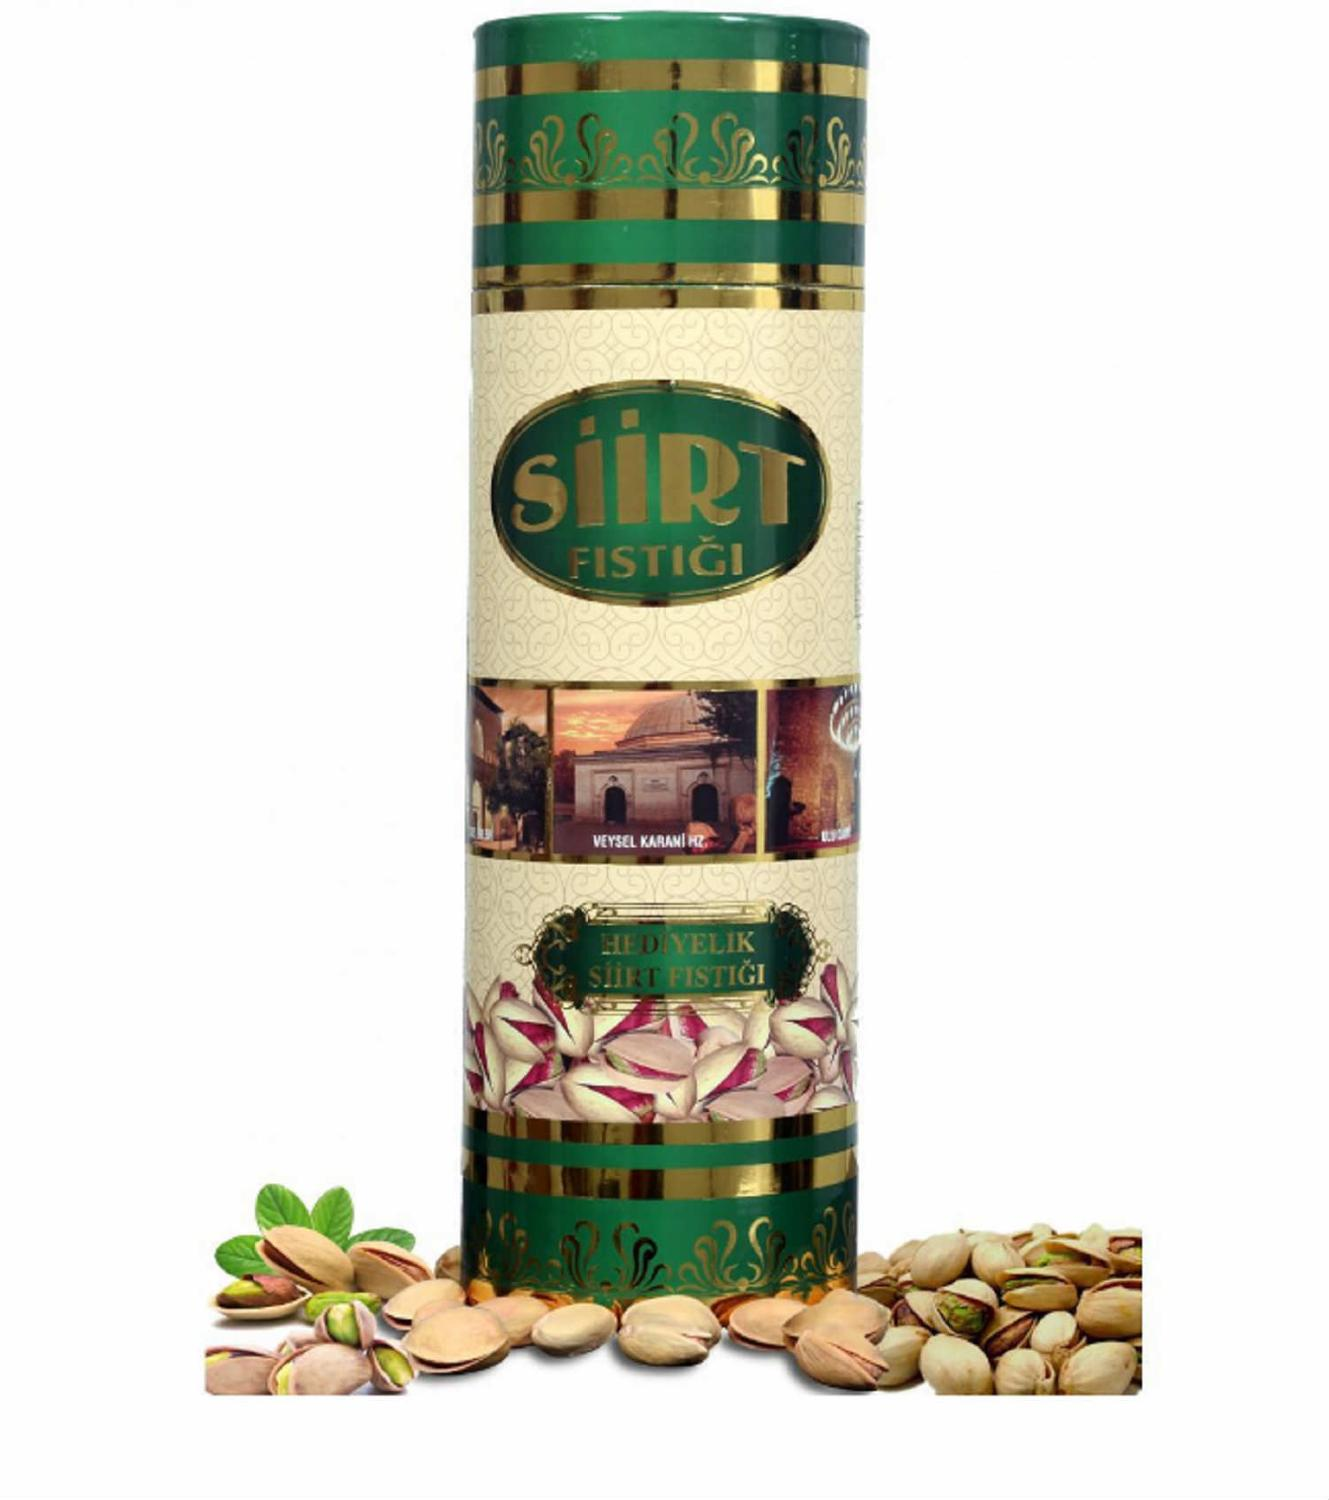 Türkish Pistachio Naturel Premium Happyness Gift Box Antep-şam-siirt-premium Quality Pistachio Of Siirt-fresh MADE İN TURKEY :)